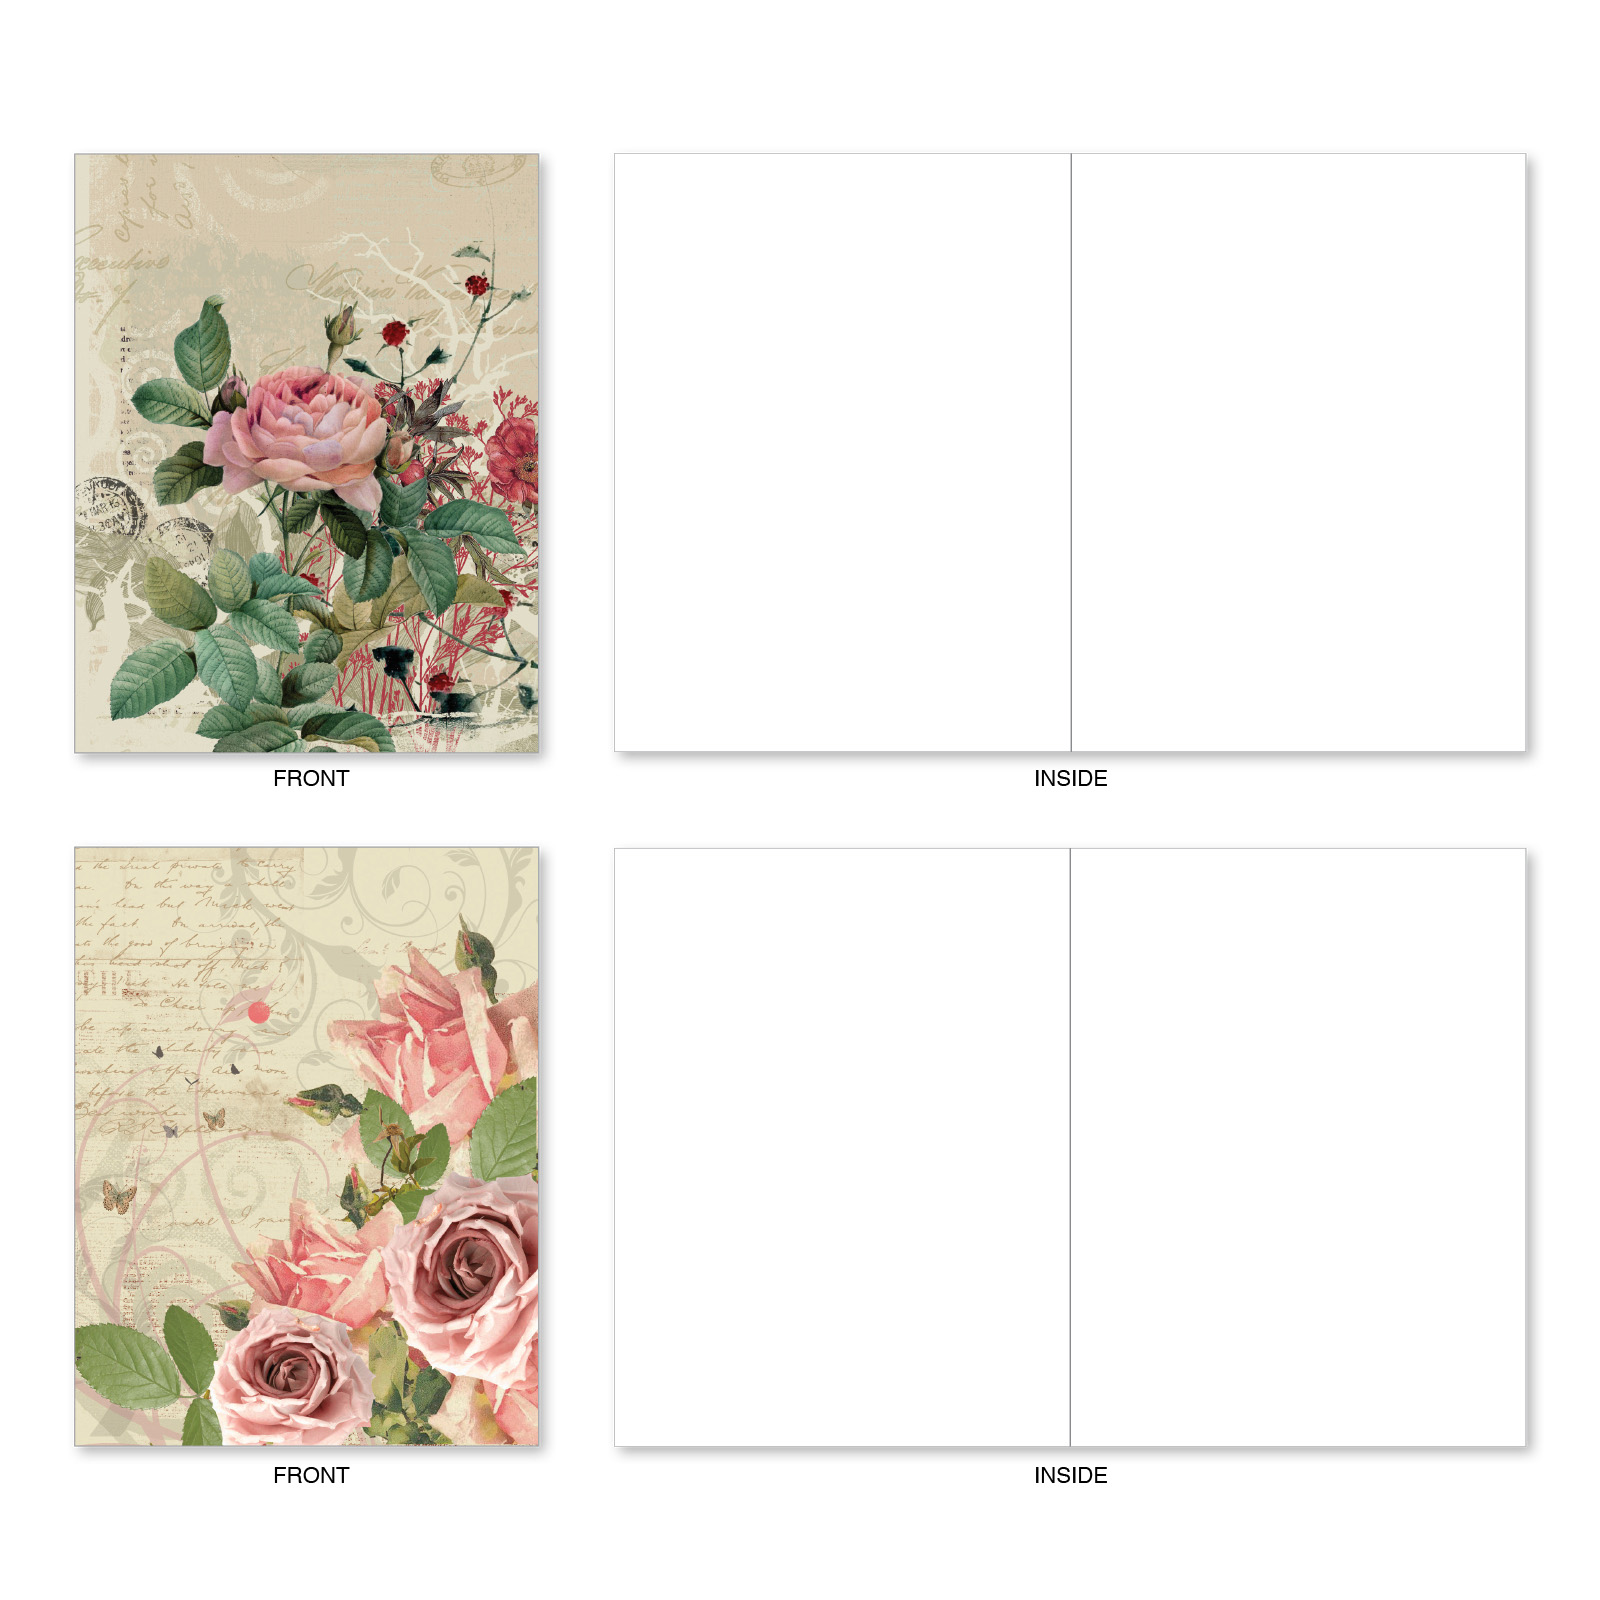 Beautiful Blossoms 10 Boxed Floral Blueprints All Occasion Greeting Cards Set of Assorted Square-Top Flower Notes Floral Stationery Notecards w// Envelopes 4 x 5.12 inch AMQ5650OCB-B1x10